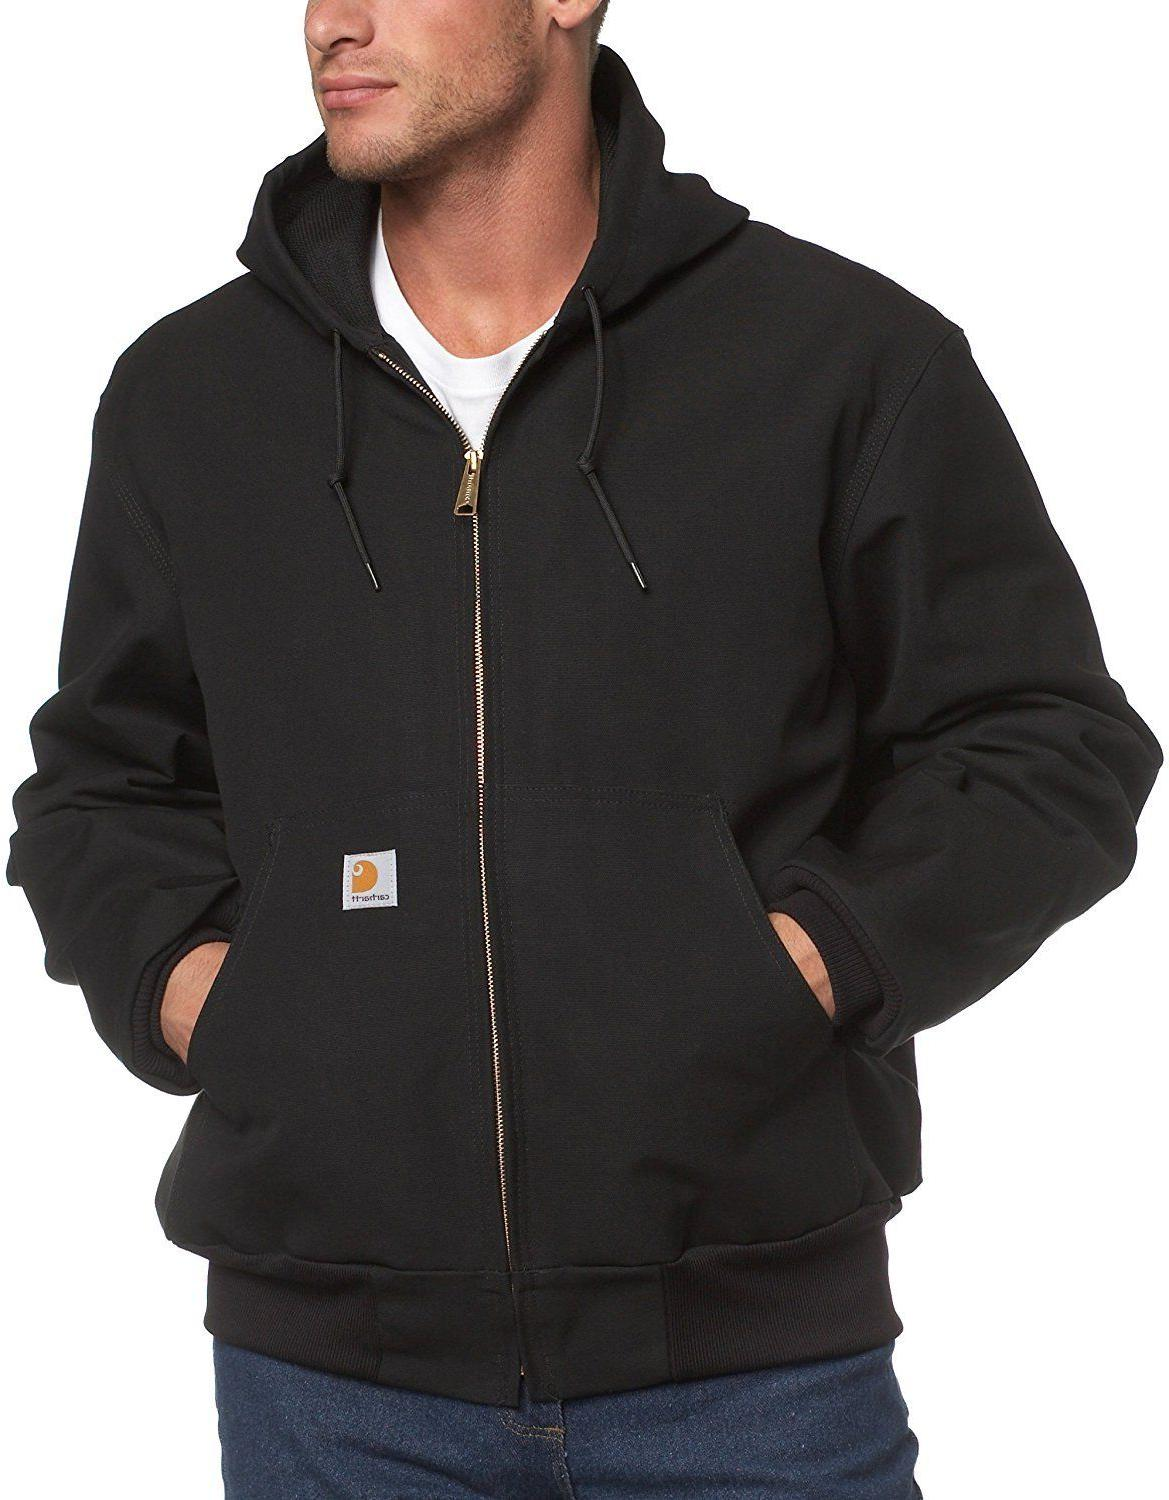 Carhartt Men's Big Tall Hoodie Jacket